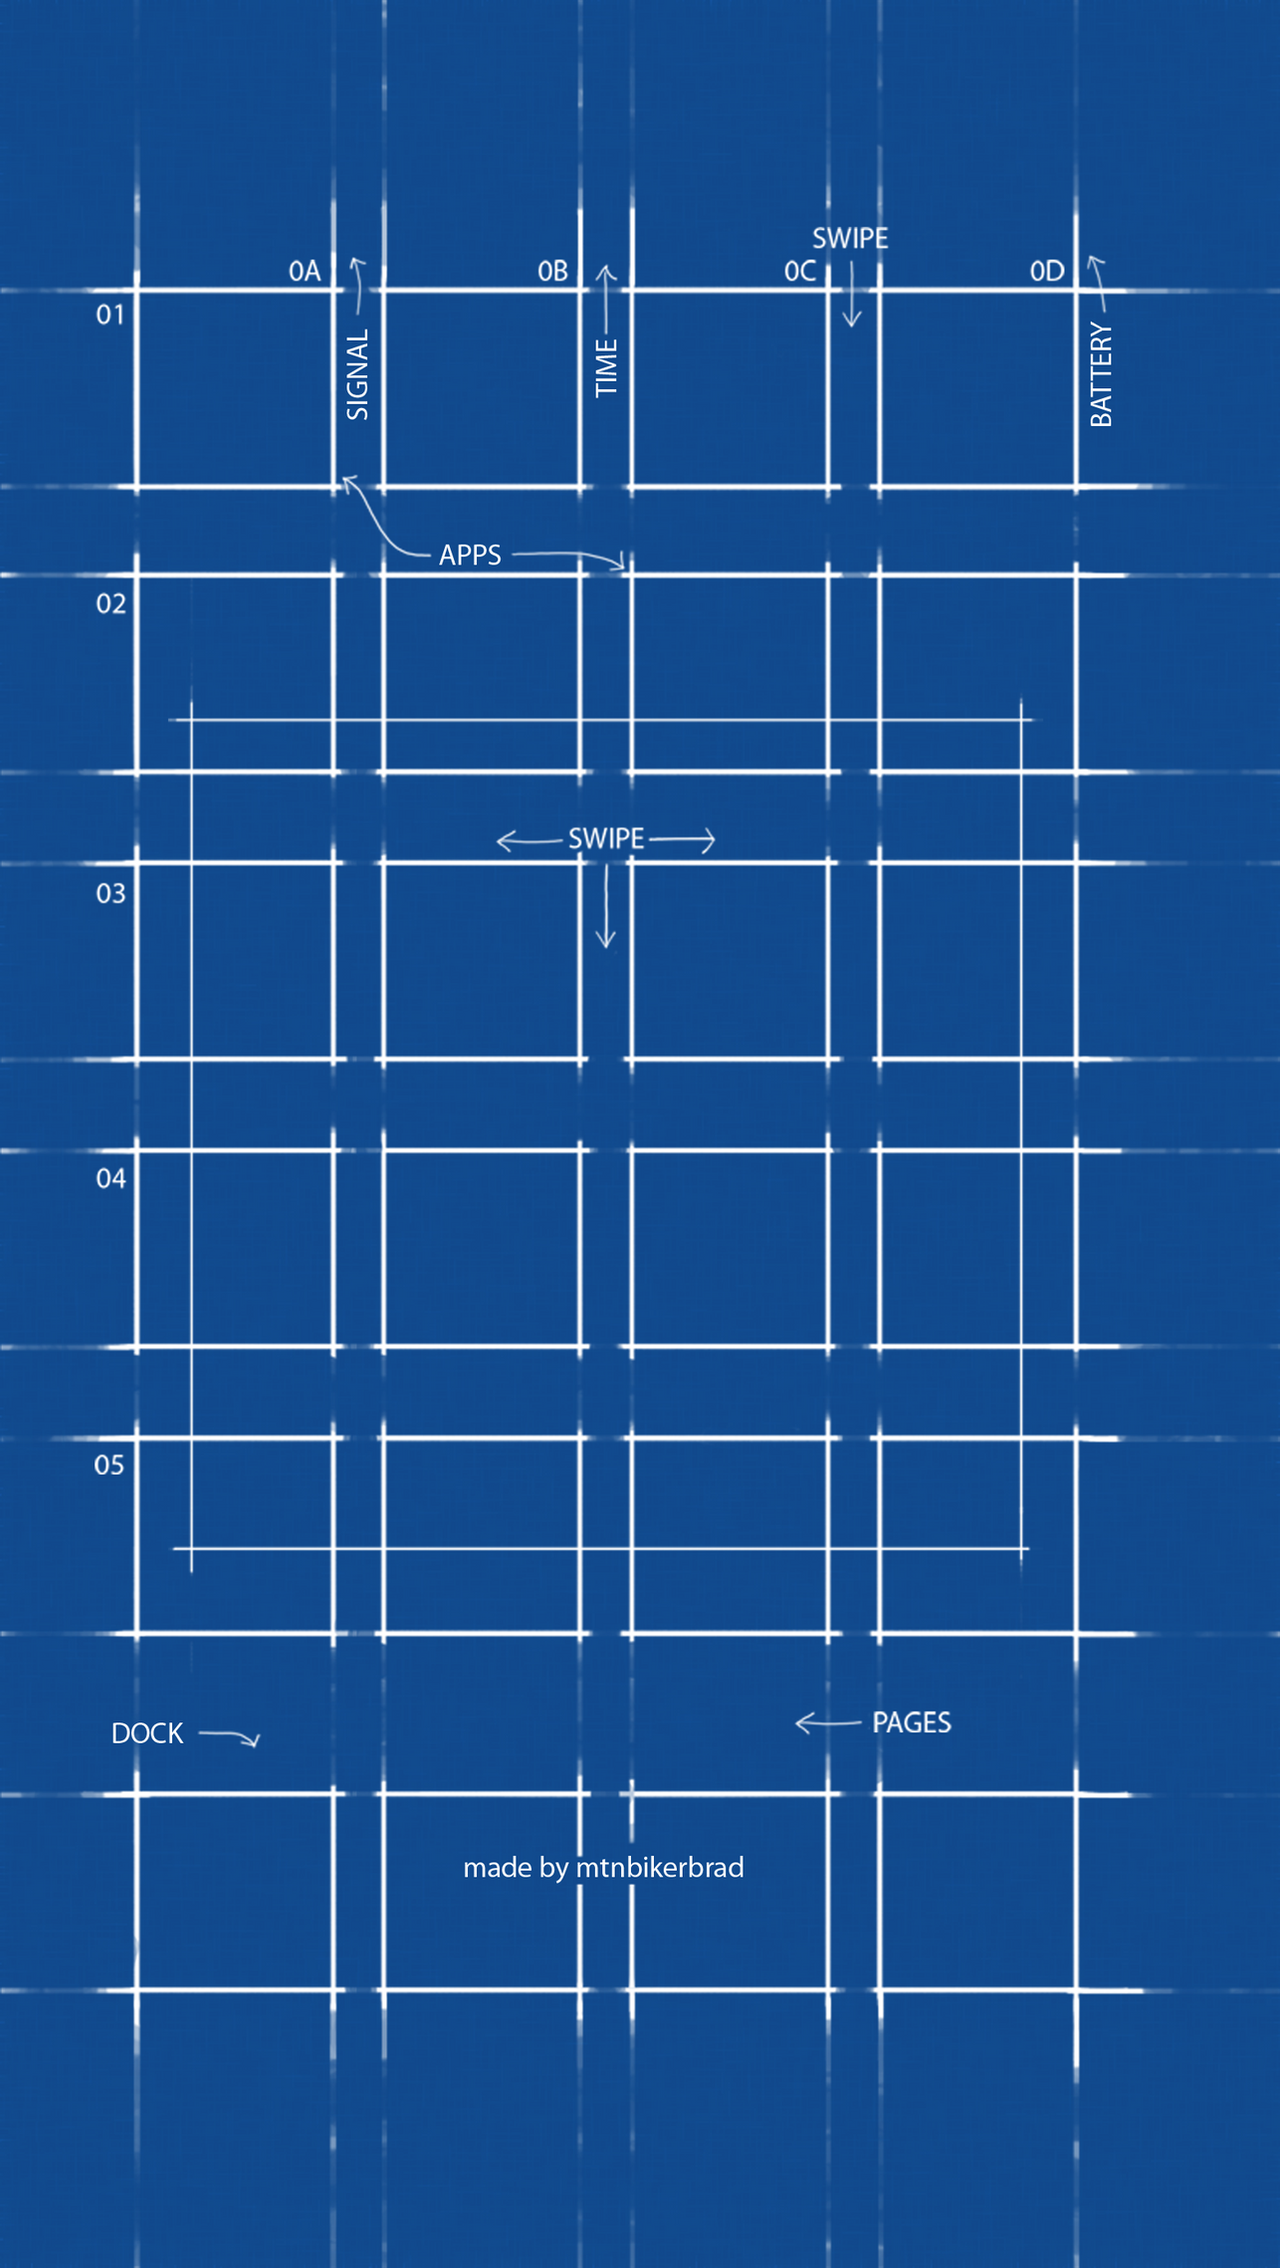 Official blueprint wallpaper for ios 7 parallax by mtnbikerbrad on official blueprint wallpaper for ios 7 parallax by mtnbikerbrad malvernweather Images